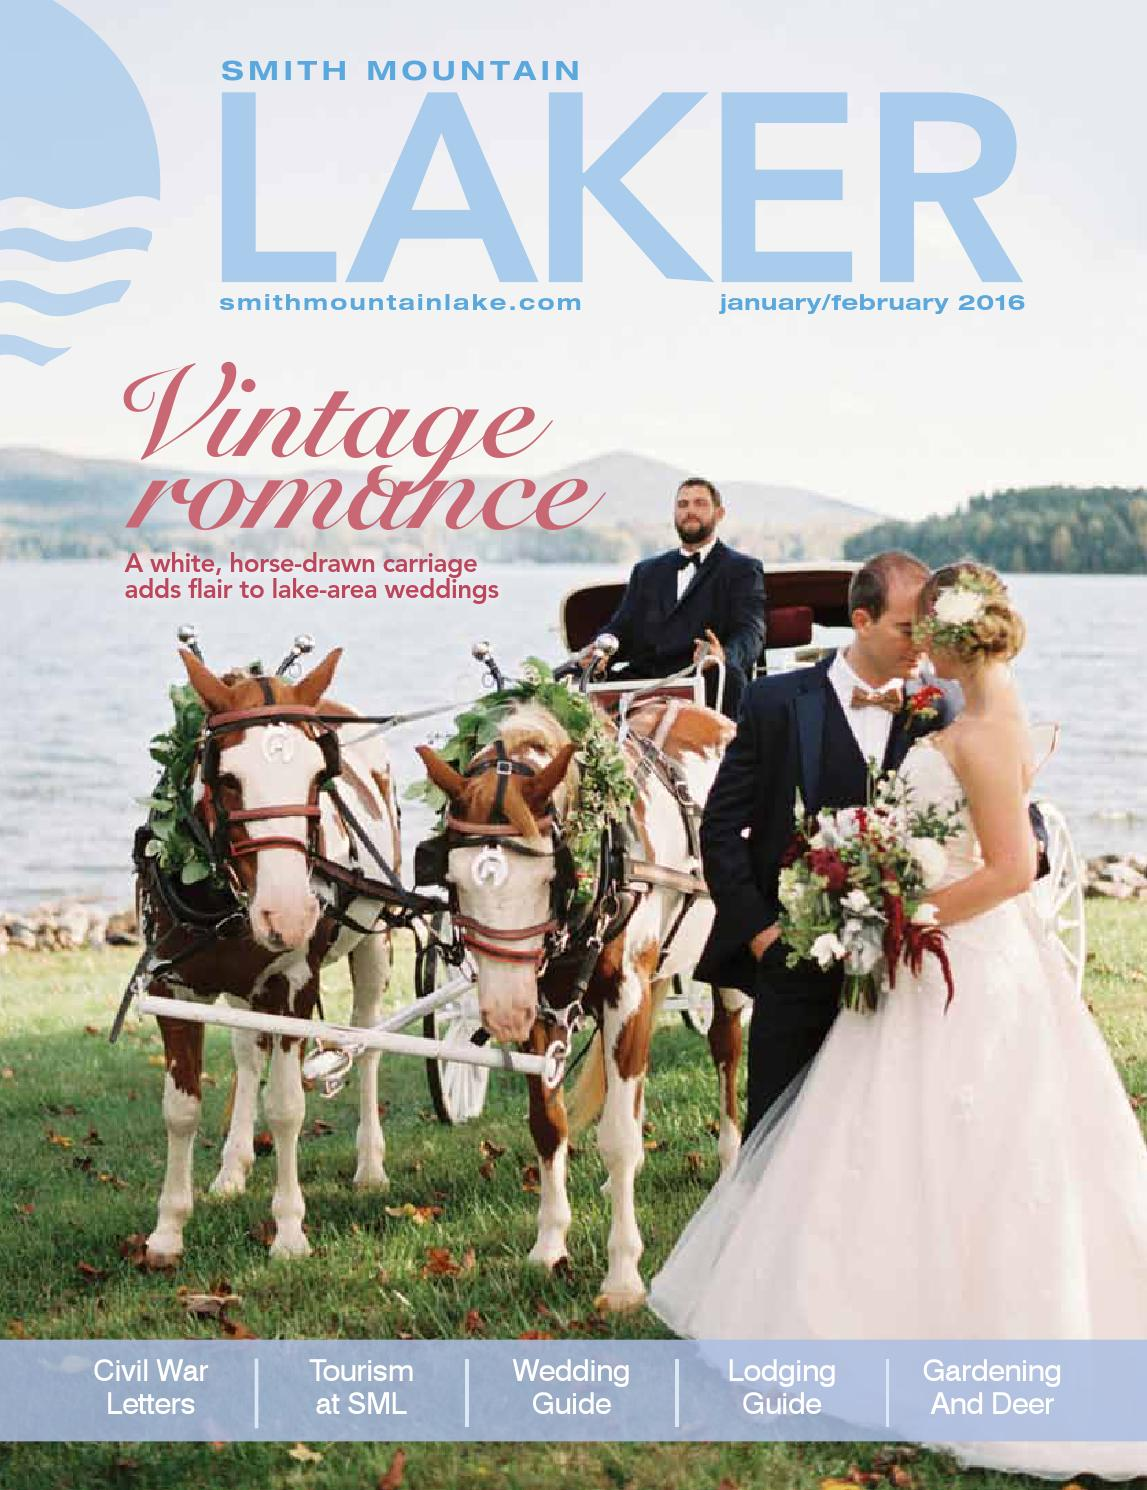 Laura steele tom griswold wedding - Laker Magazine January February 2016